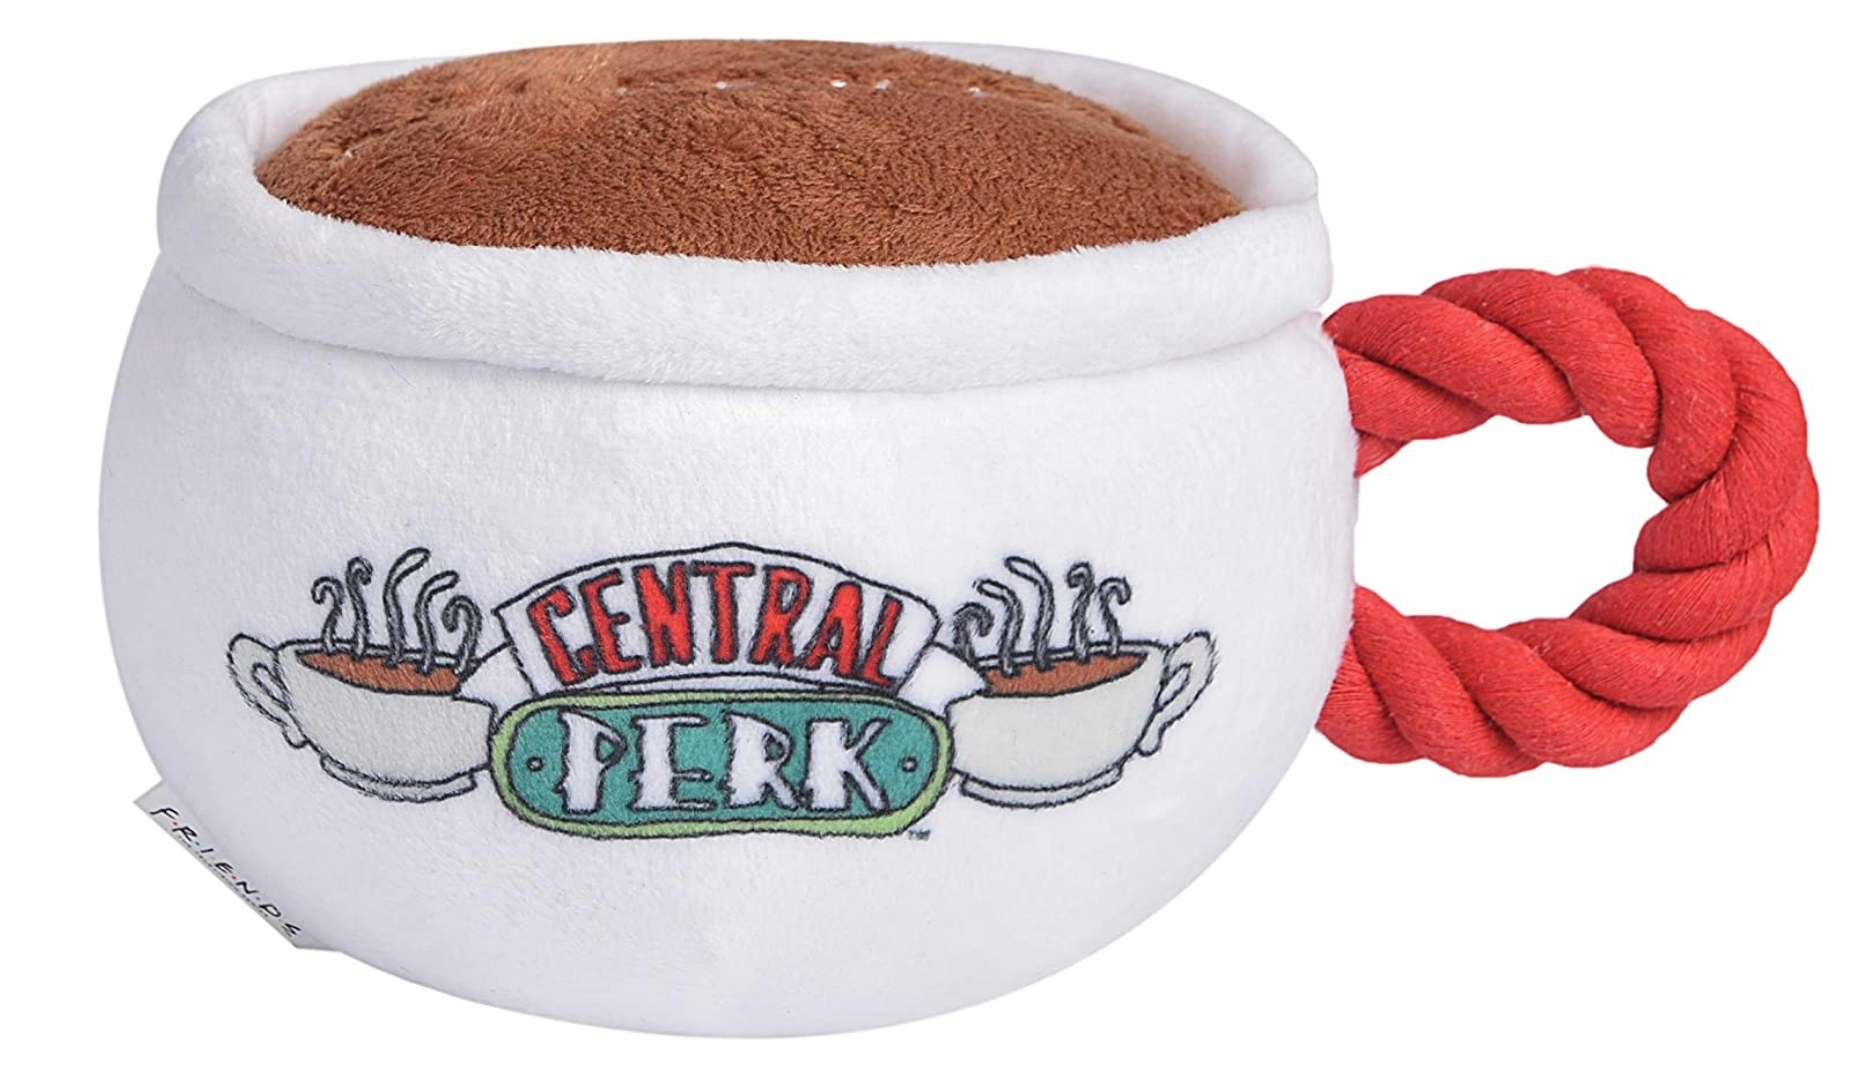 A chew toy shaped like a white coffee mug with rand handle and the Central Perk logo